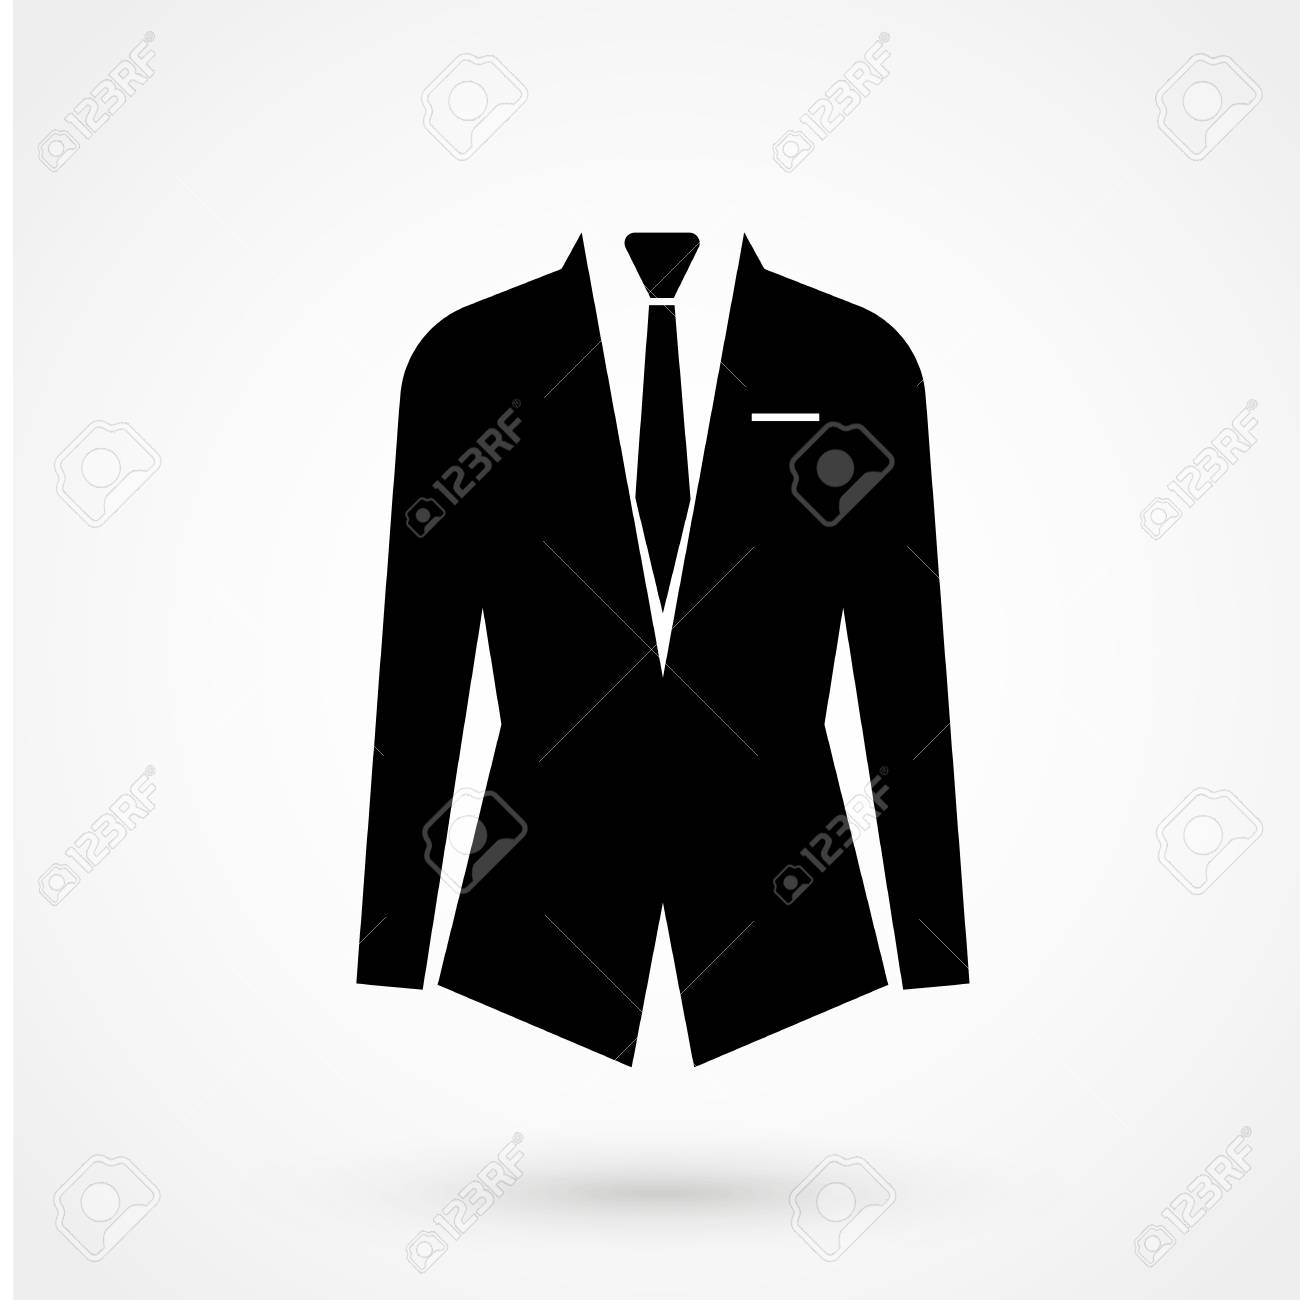 Vector illustration of black suit icon